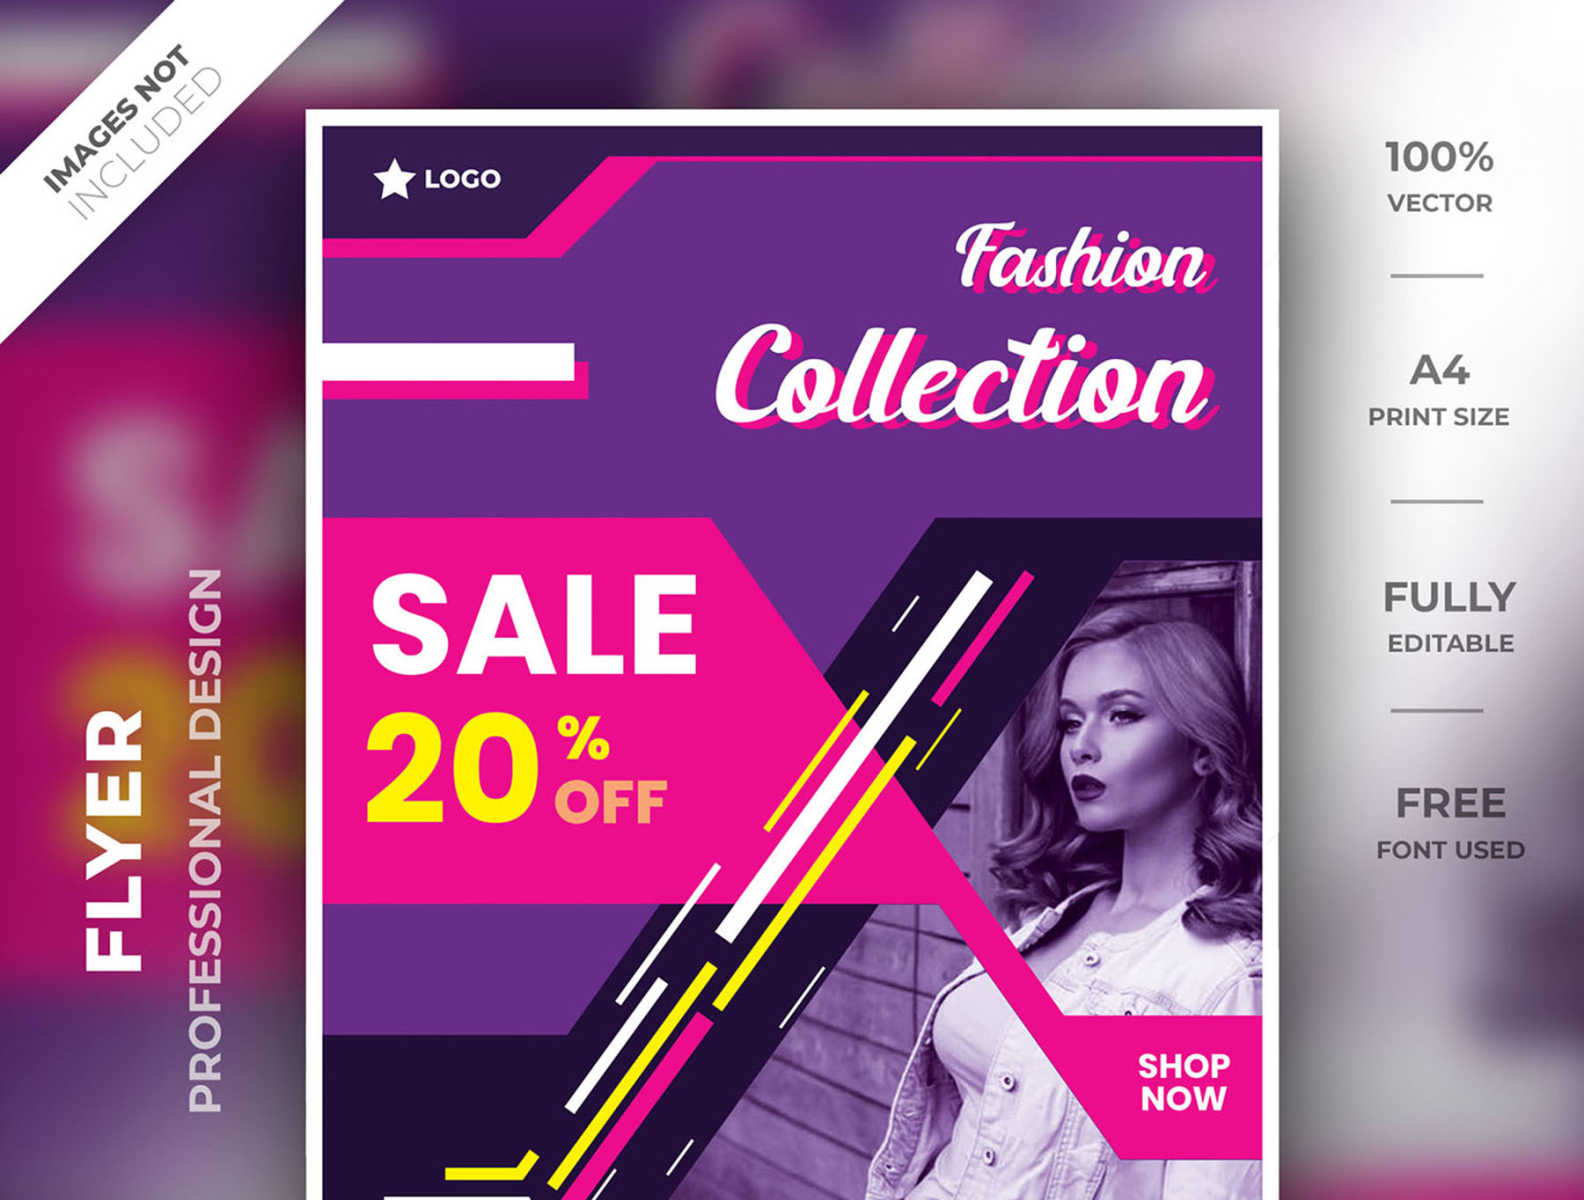 Flyer Template For Fashion Design By Graphic Arena On Dribbble